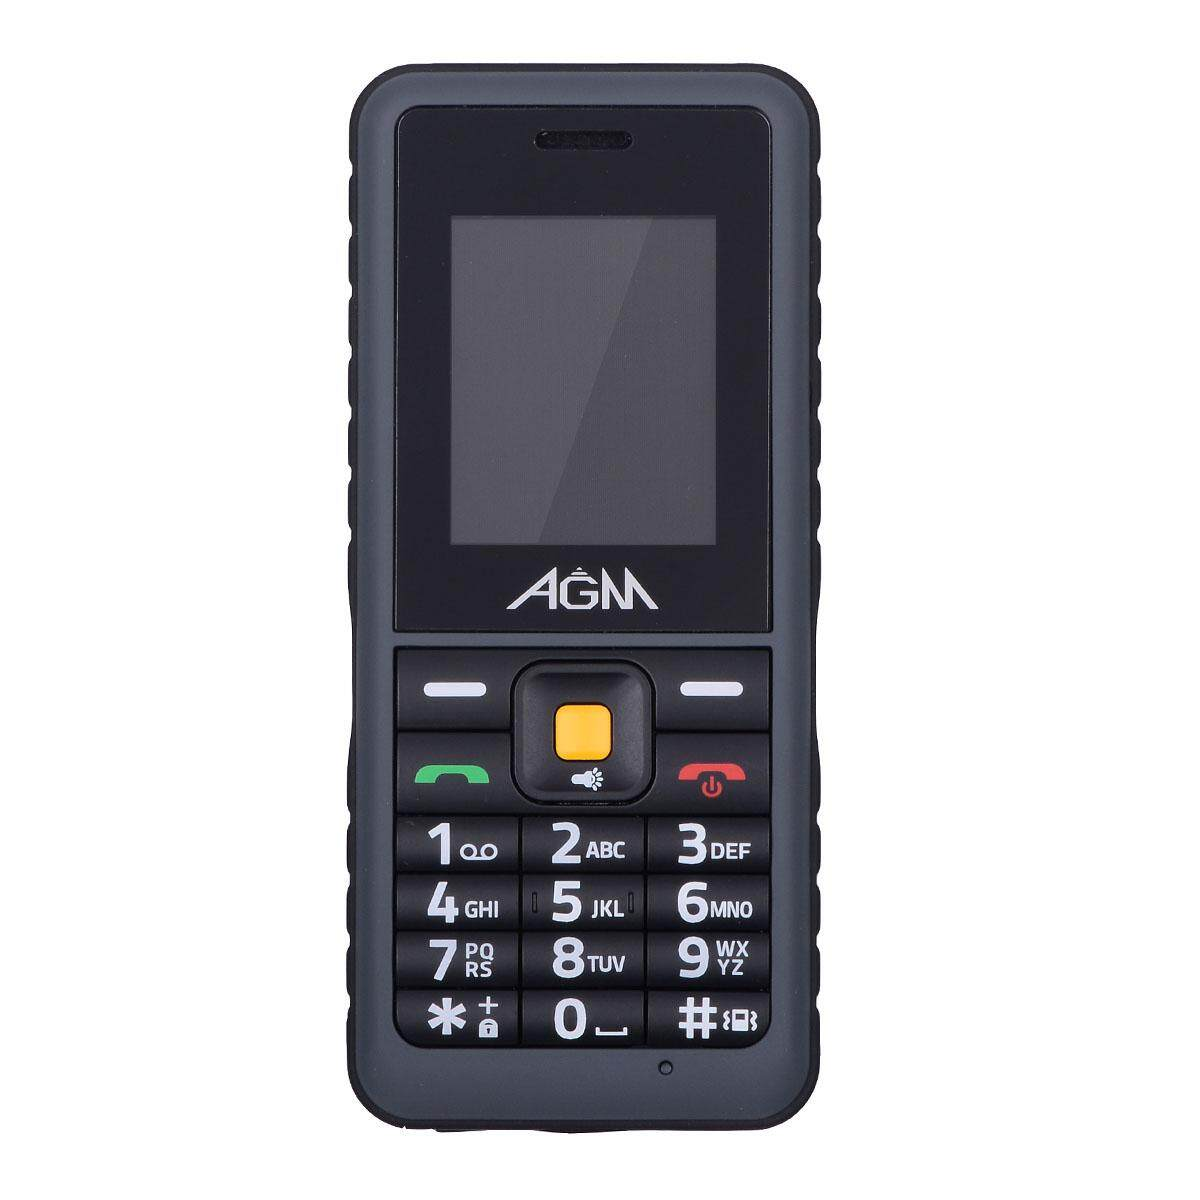 AGM stone-2 IP67 Dust-proof Waterproof Outdoor Mobile Phone